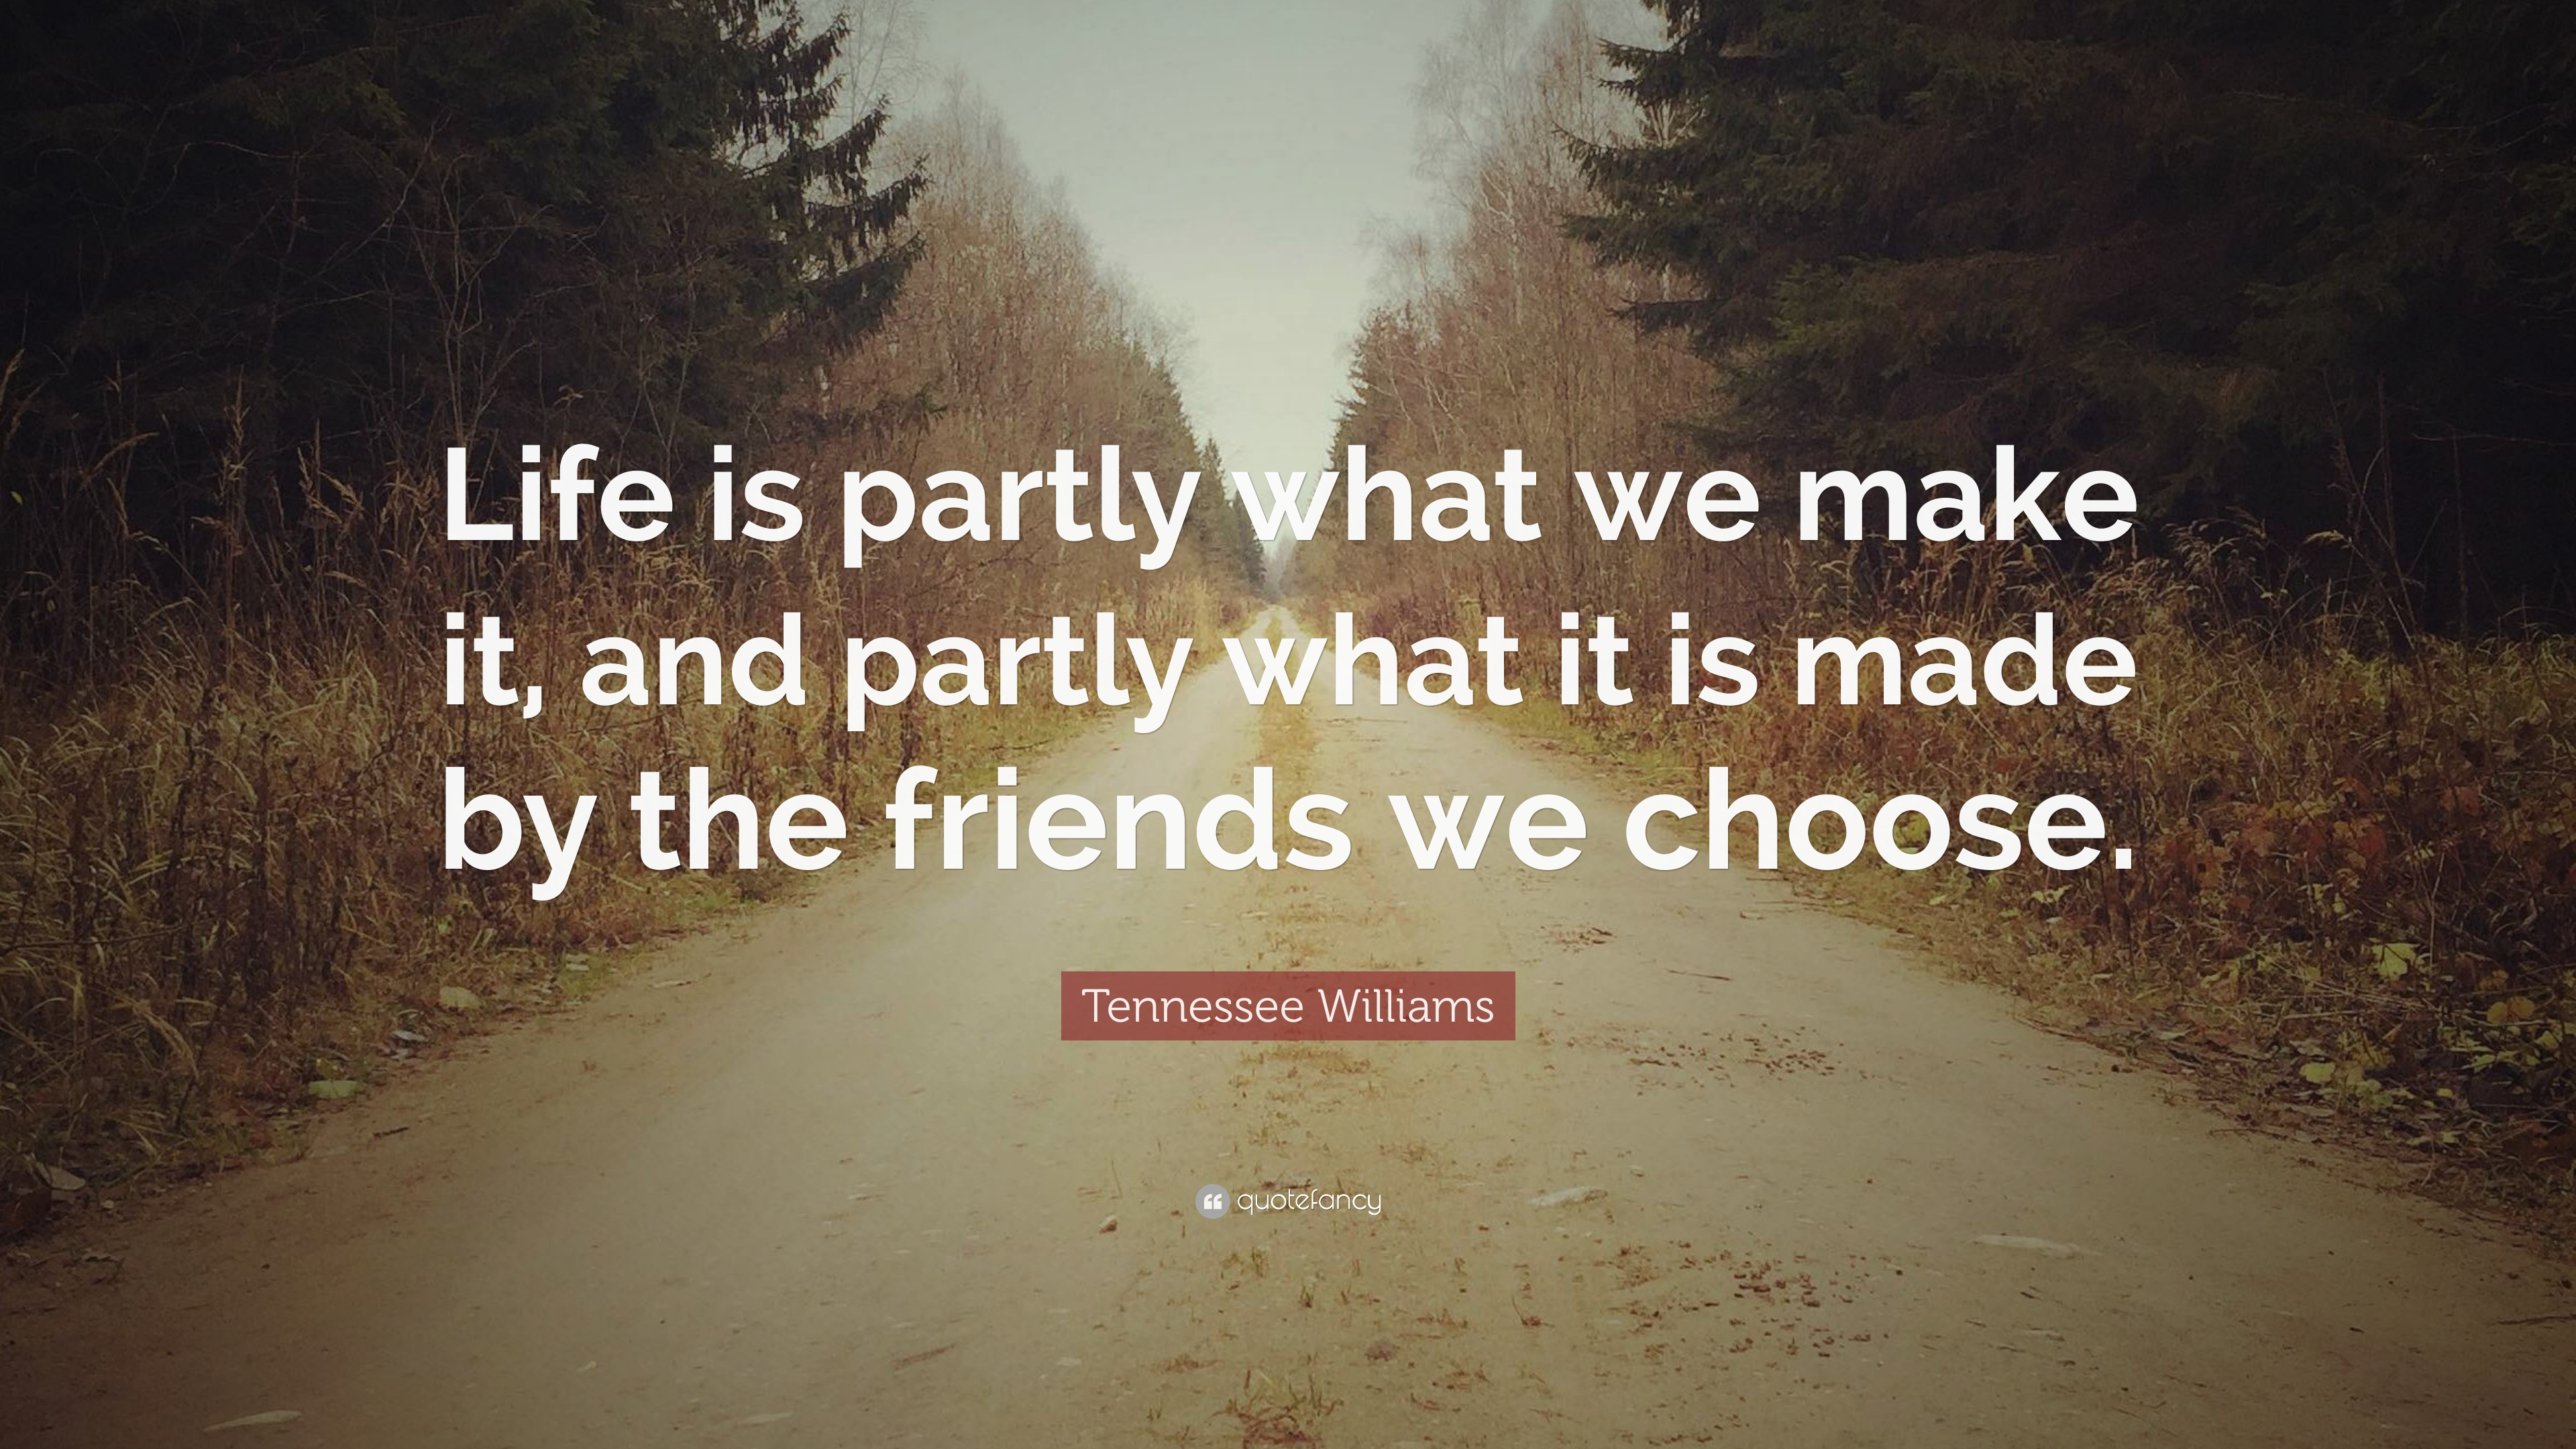 Tennessee Williams Quote Life Is Partly What We Make It And